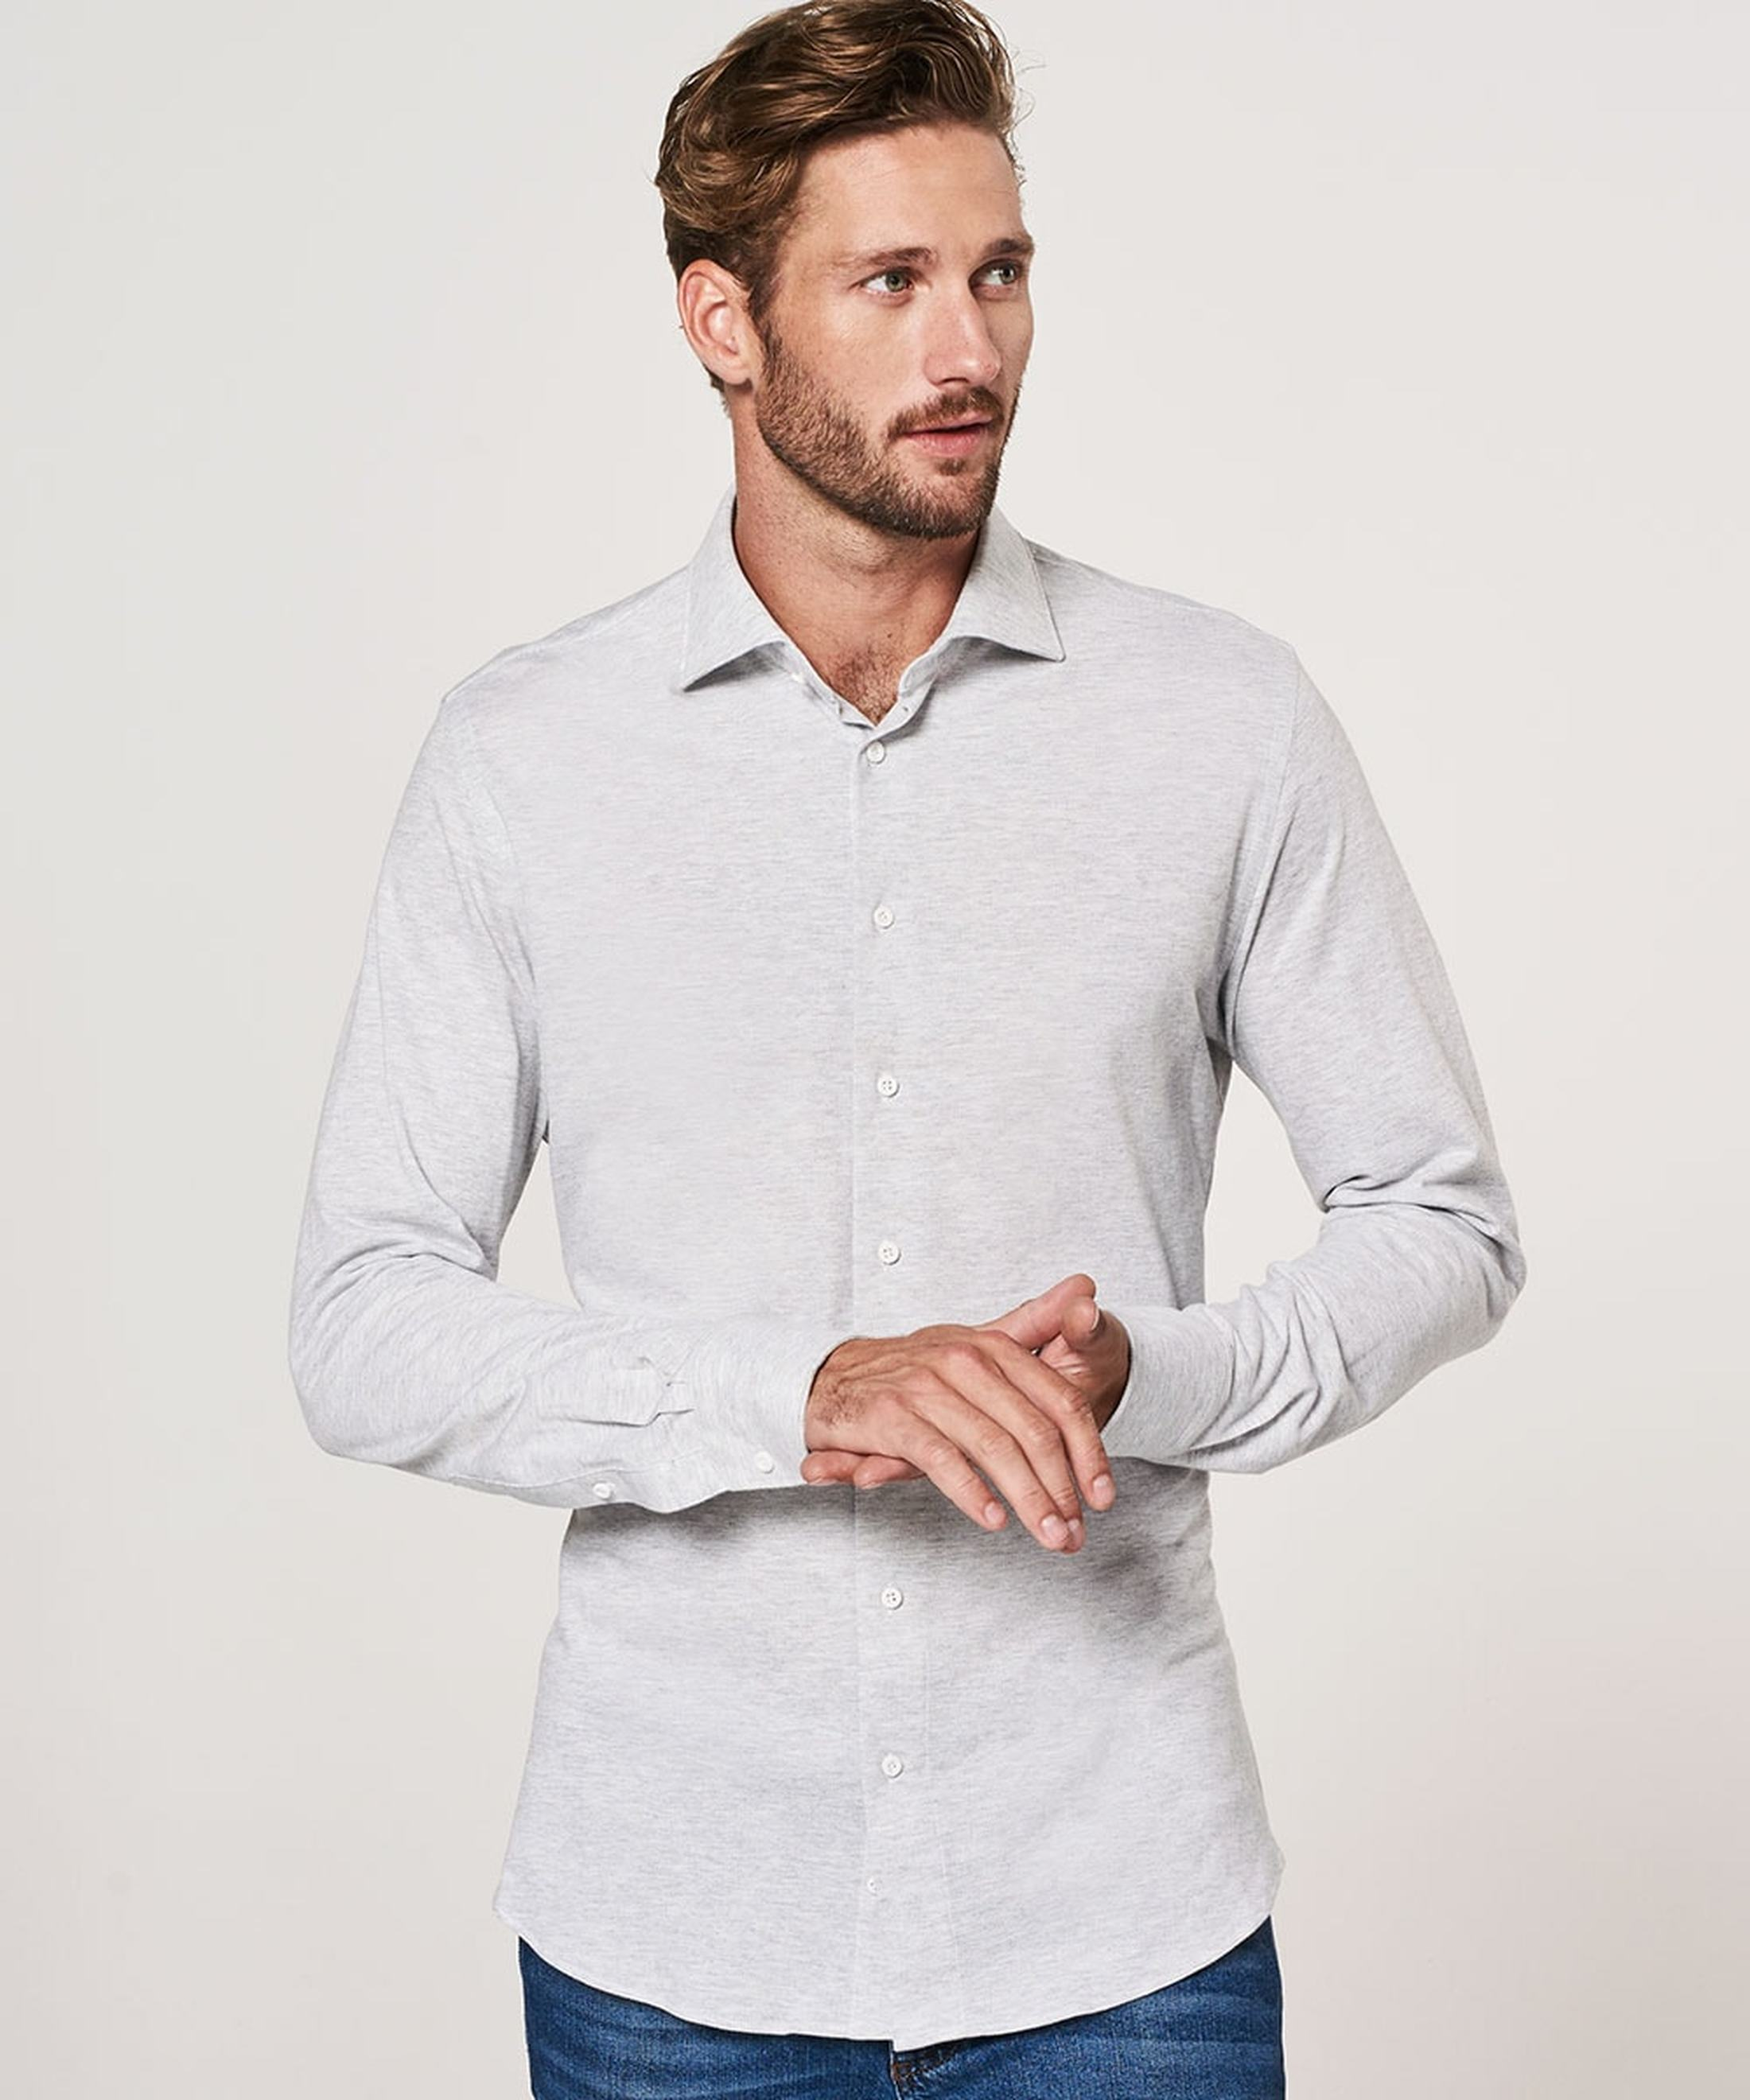 Profuomo Shirt Knitted Slim Fit Grey foto 4